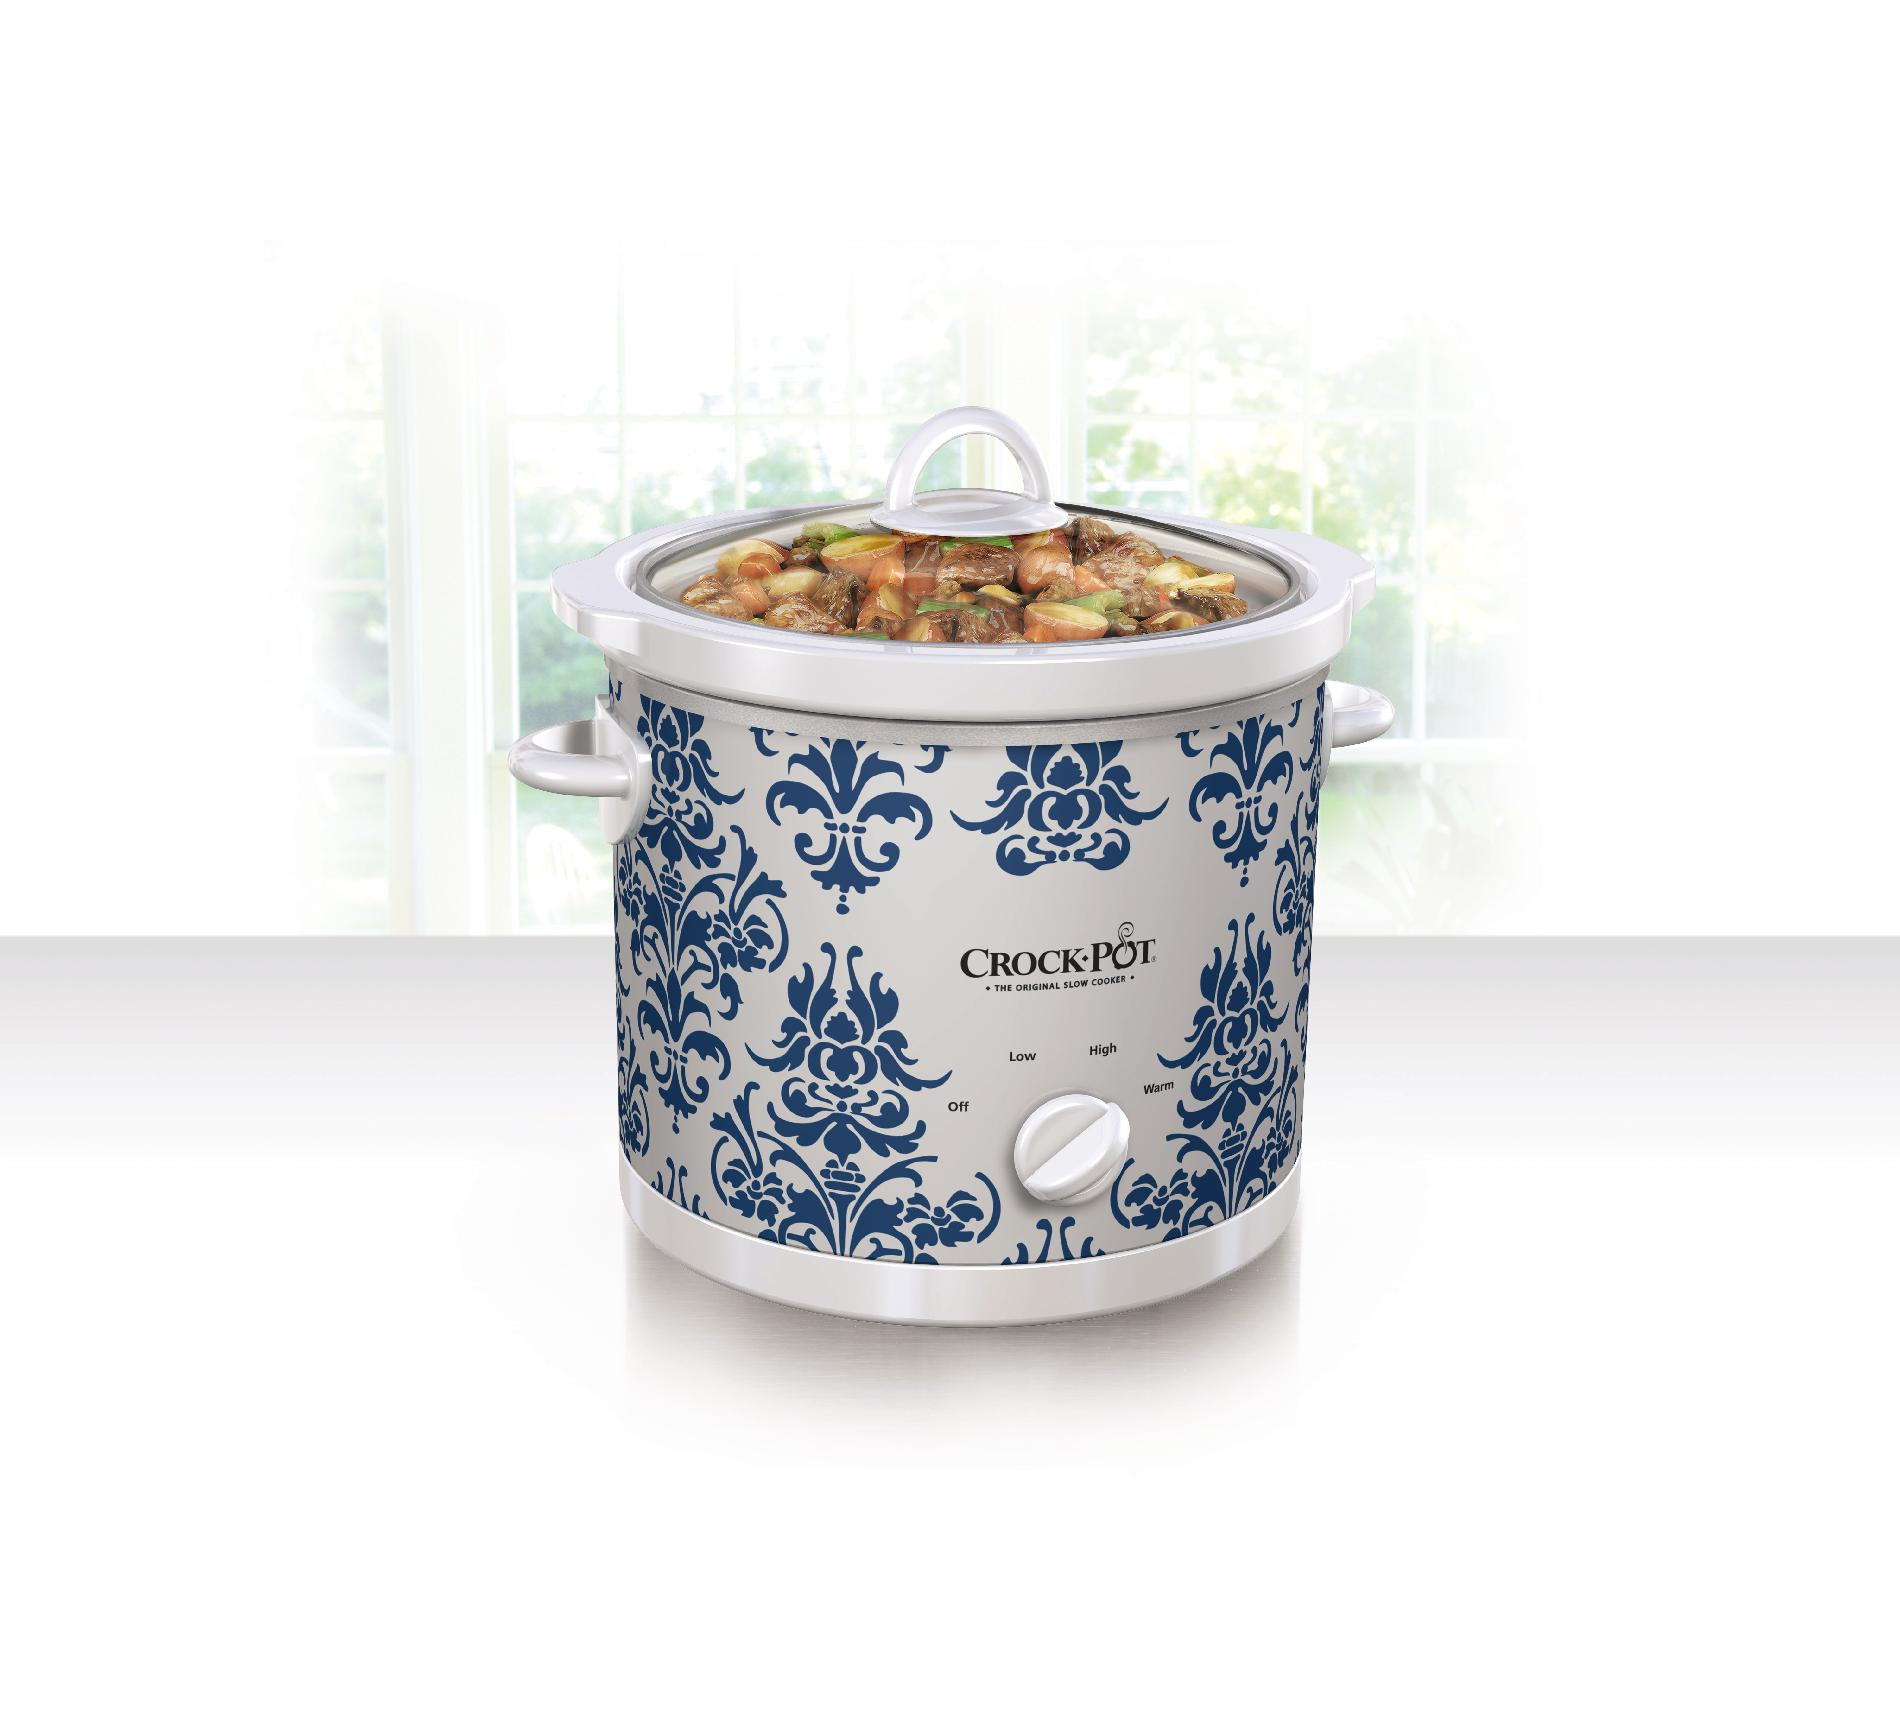 Crock Pot 3 Quart Manual Slow Cooker, Blue Damask